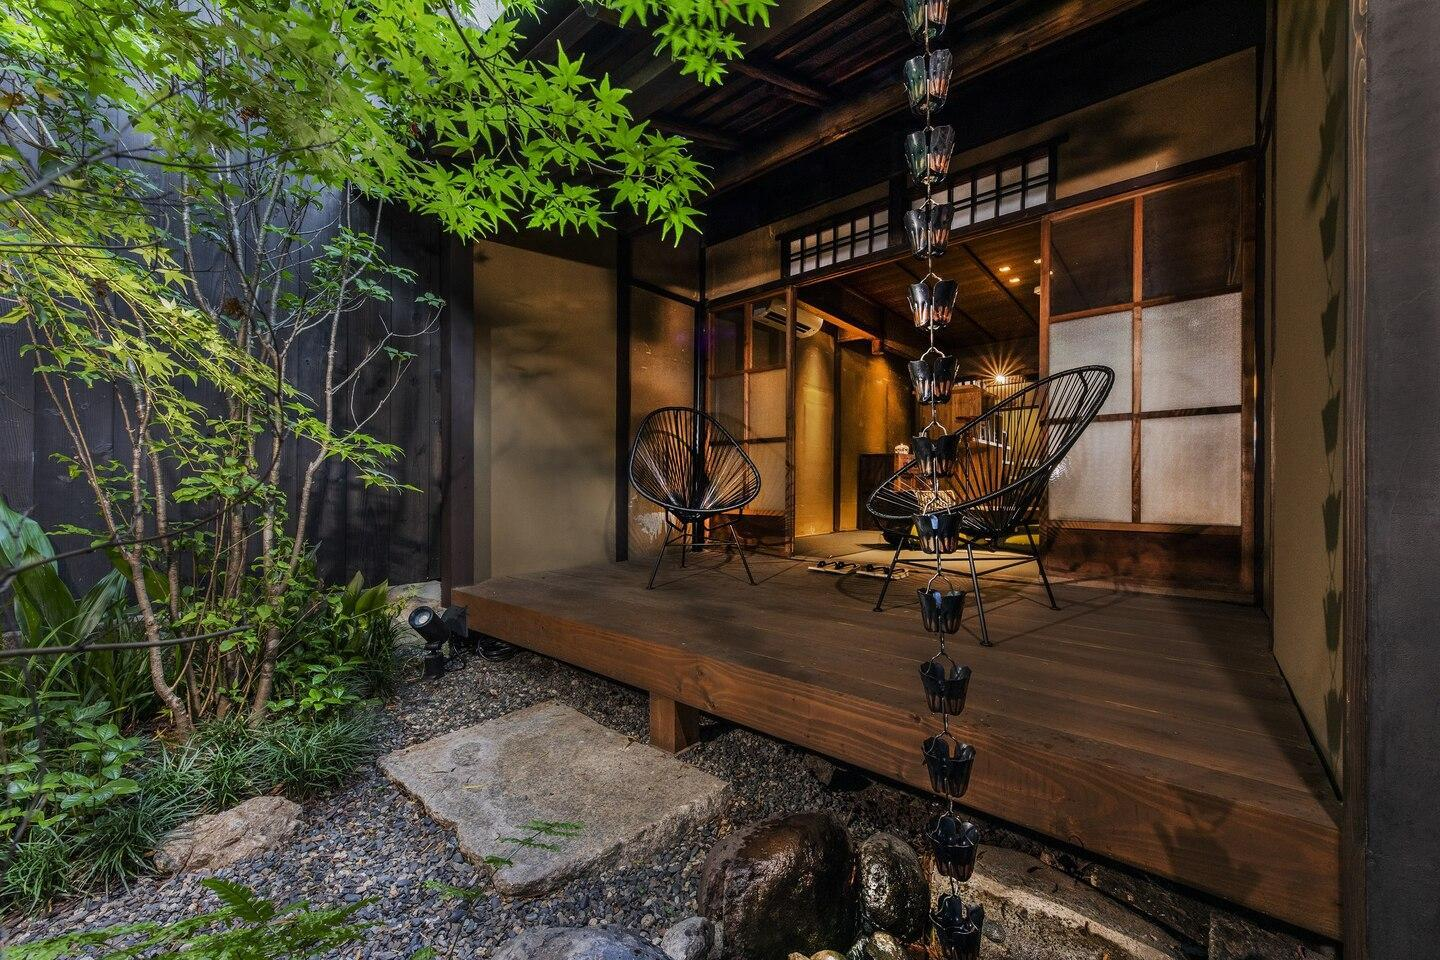 Kishoan 喜承庵  •  In the traditional heart of Kyoto